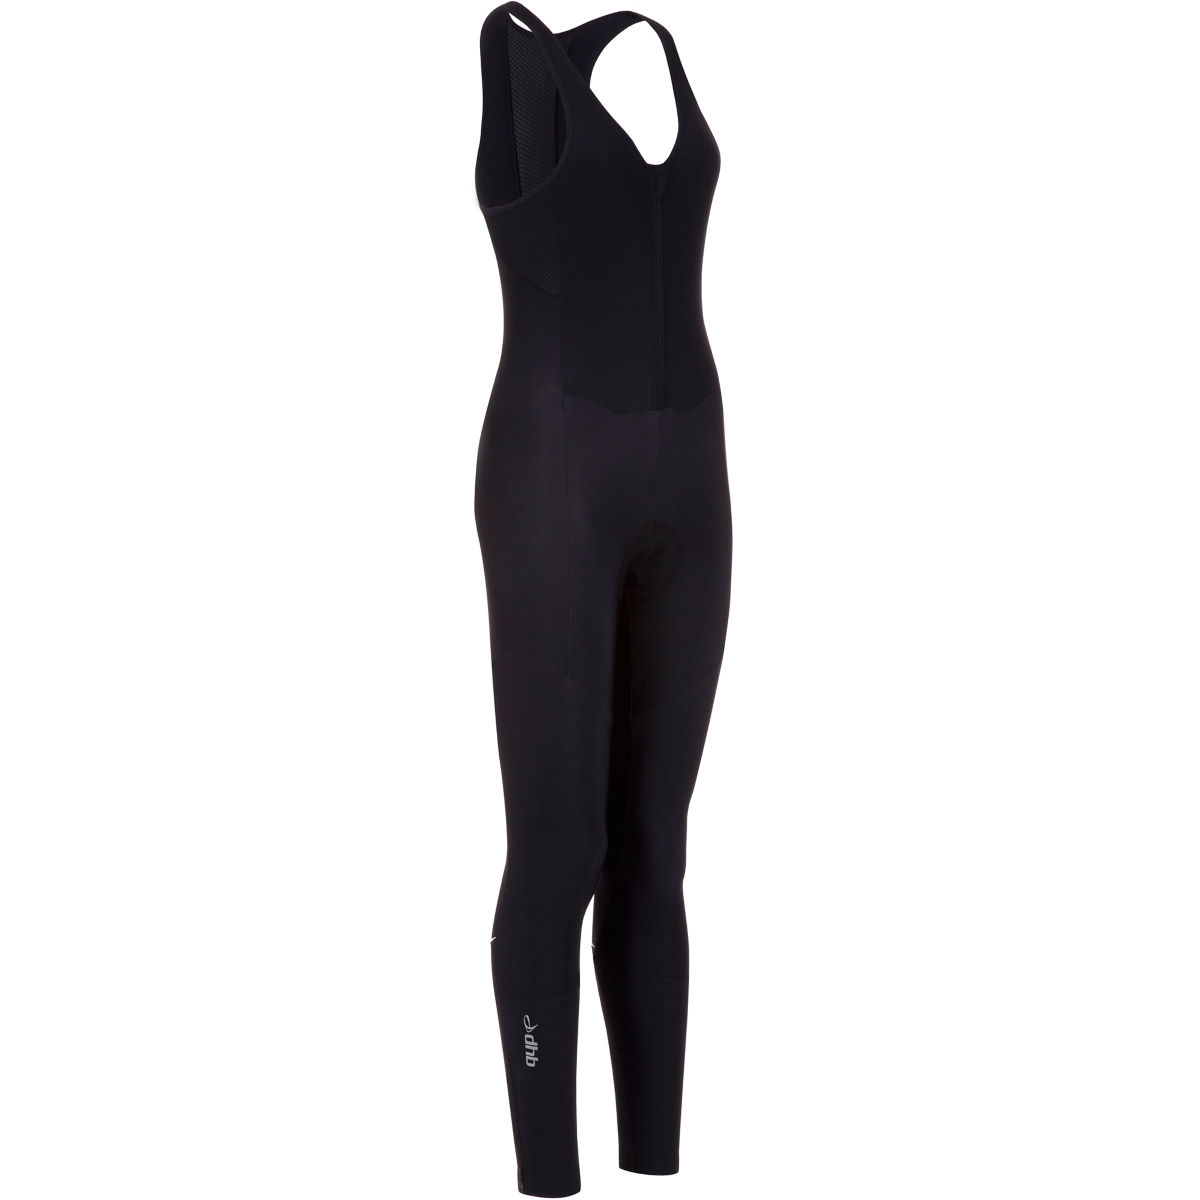 dhb Women's Vaeon Roubaix Padded Bib Tight